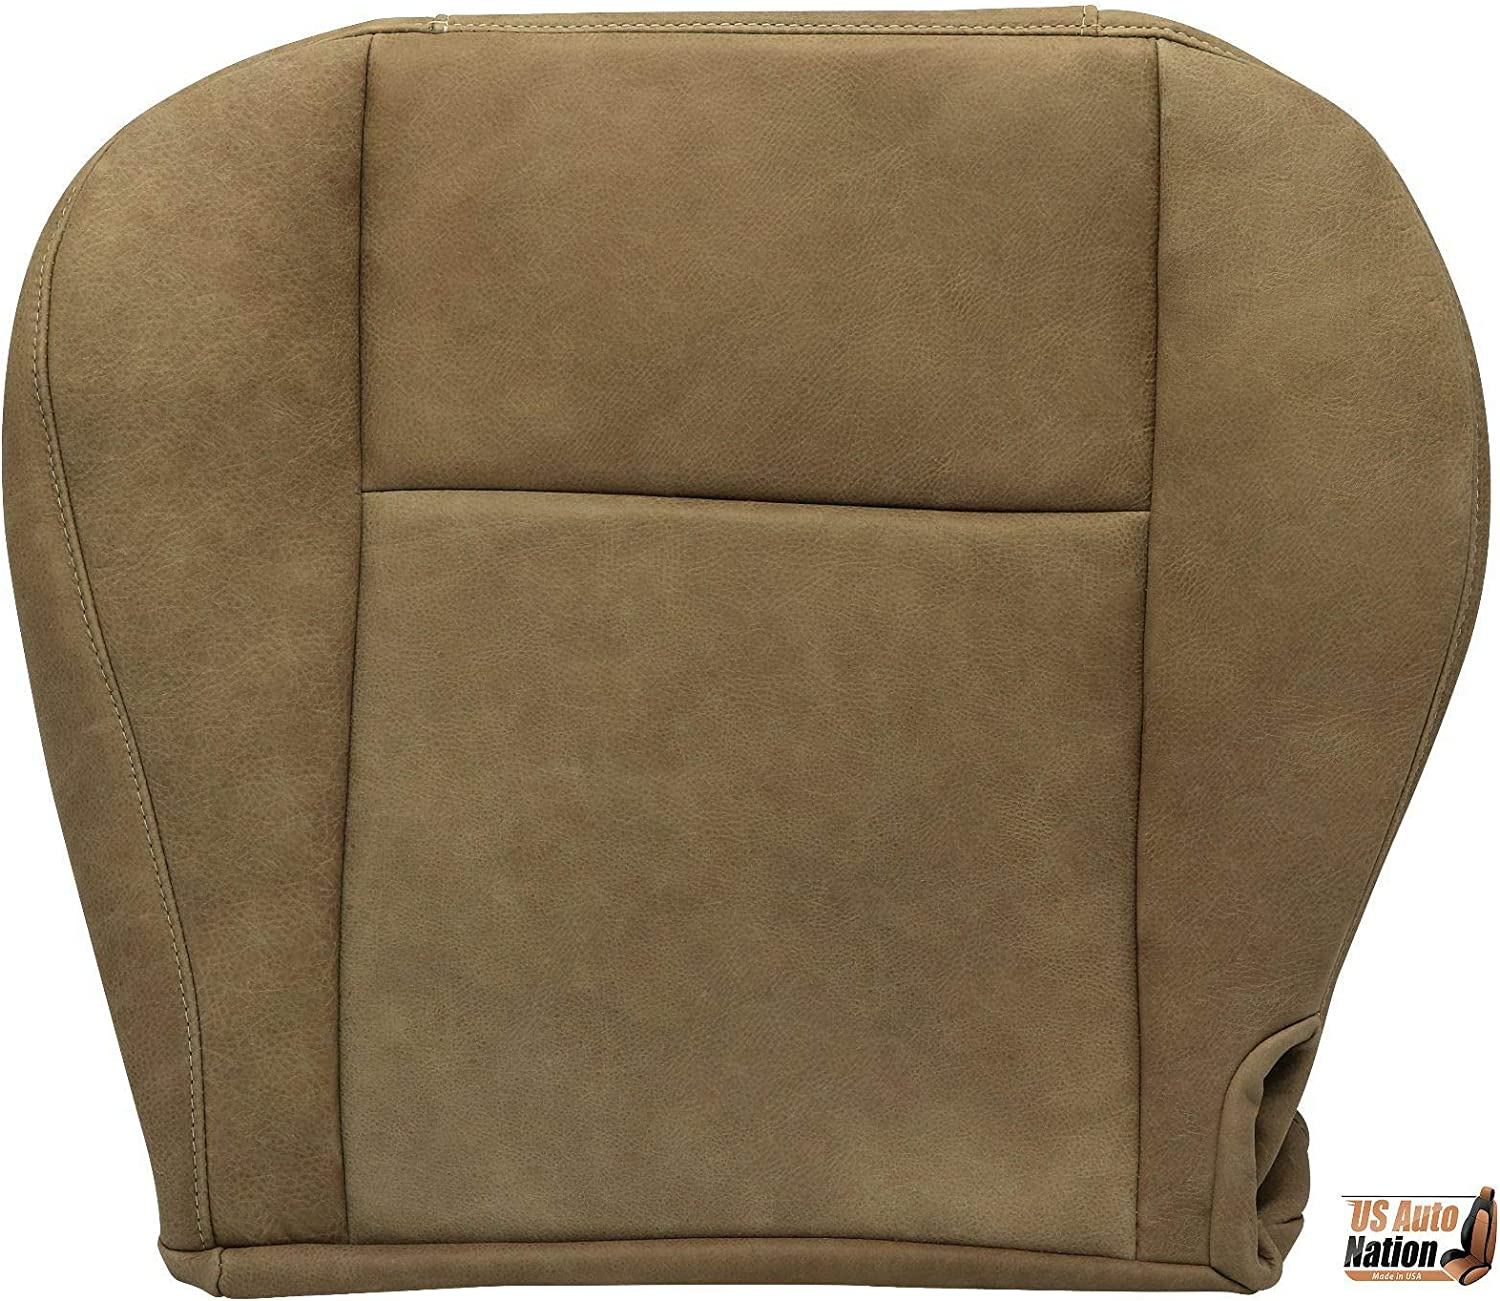 2001 2002 2003 Ford F150 King Ranch Driver Side Bottom Leather Seat Cover